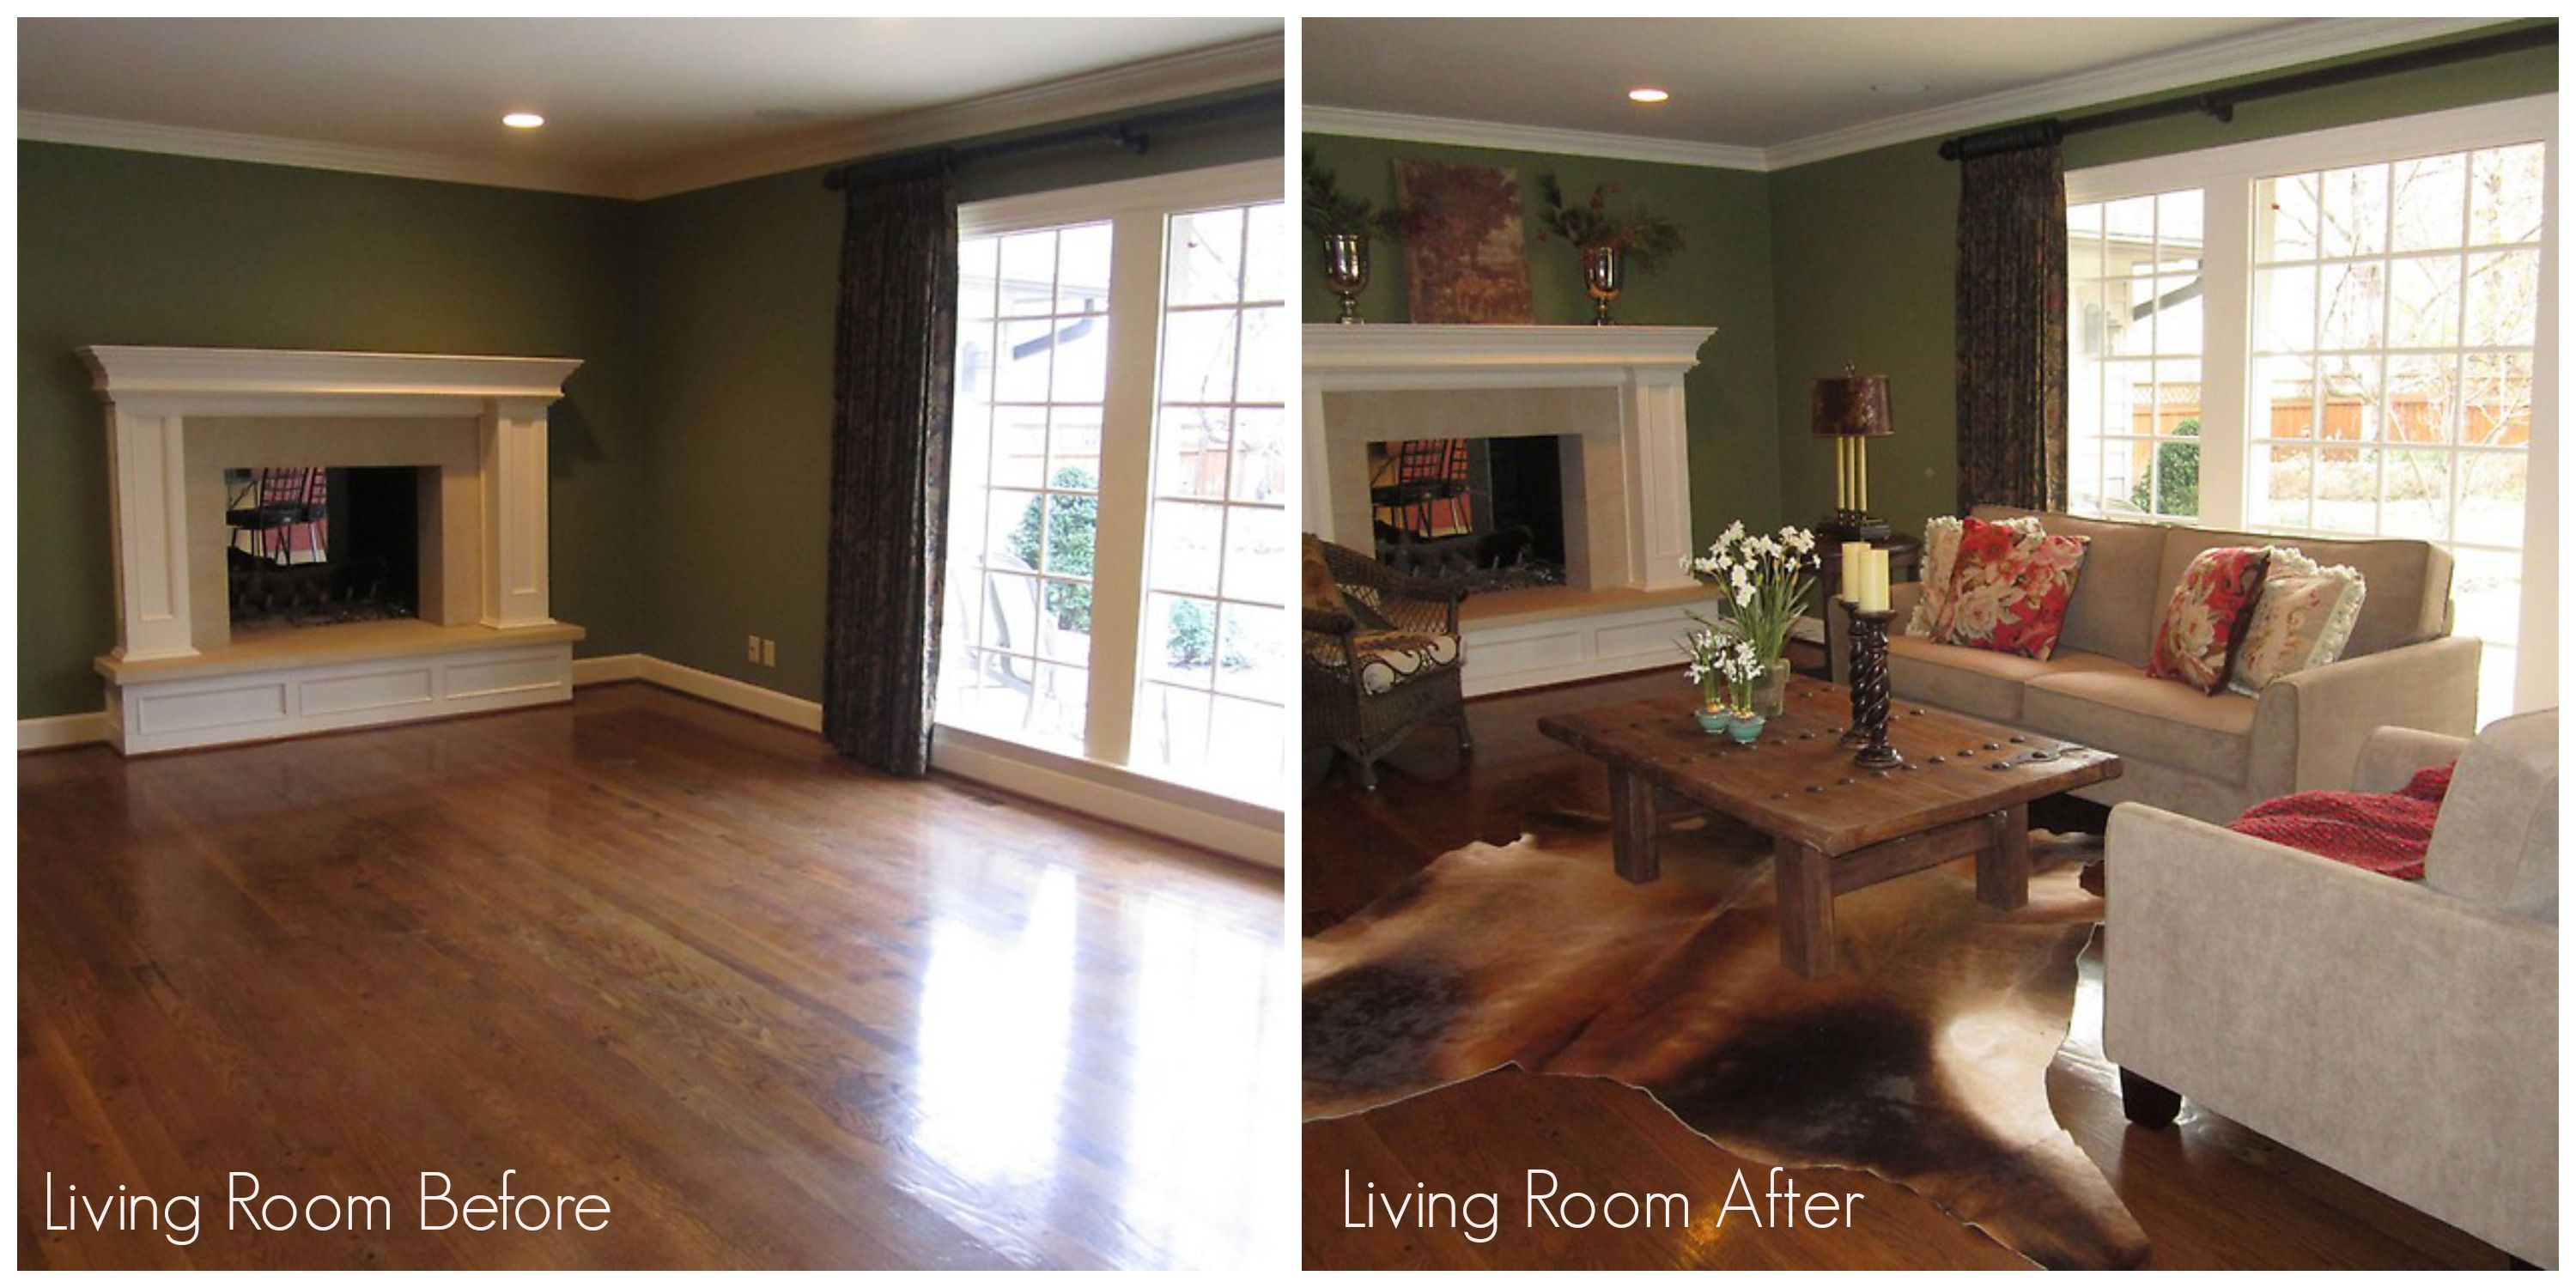 delightful home staging before and after #9: An Insideru0027s Guide To Hiring A Home Stager